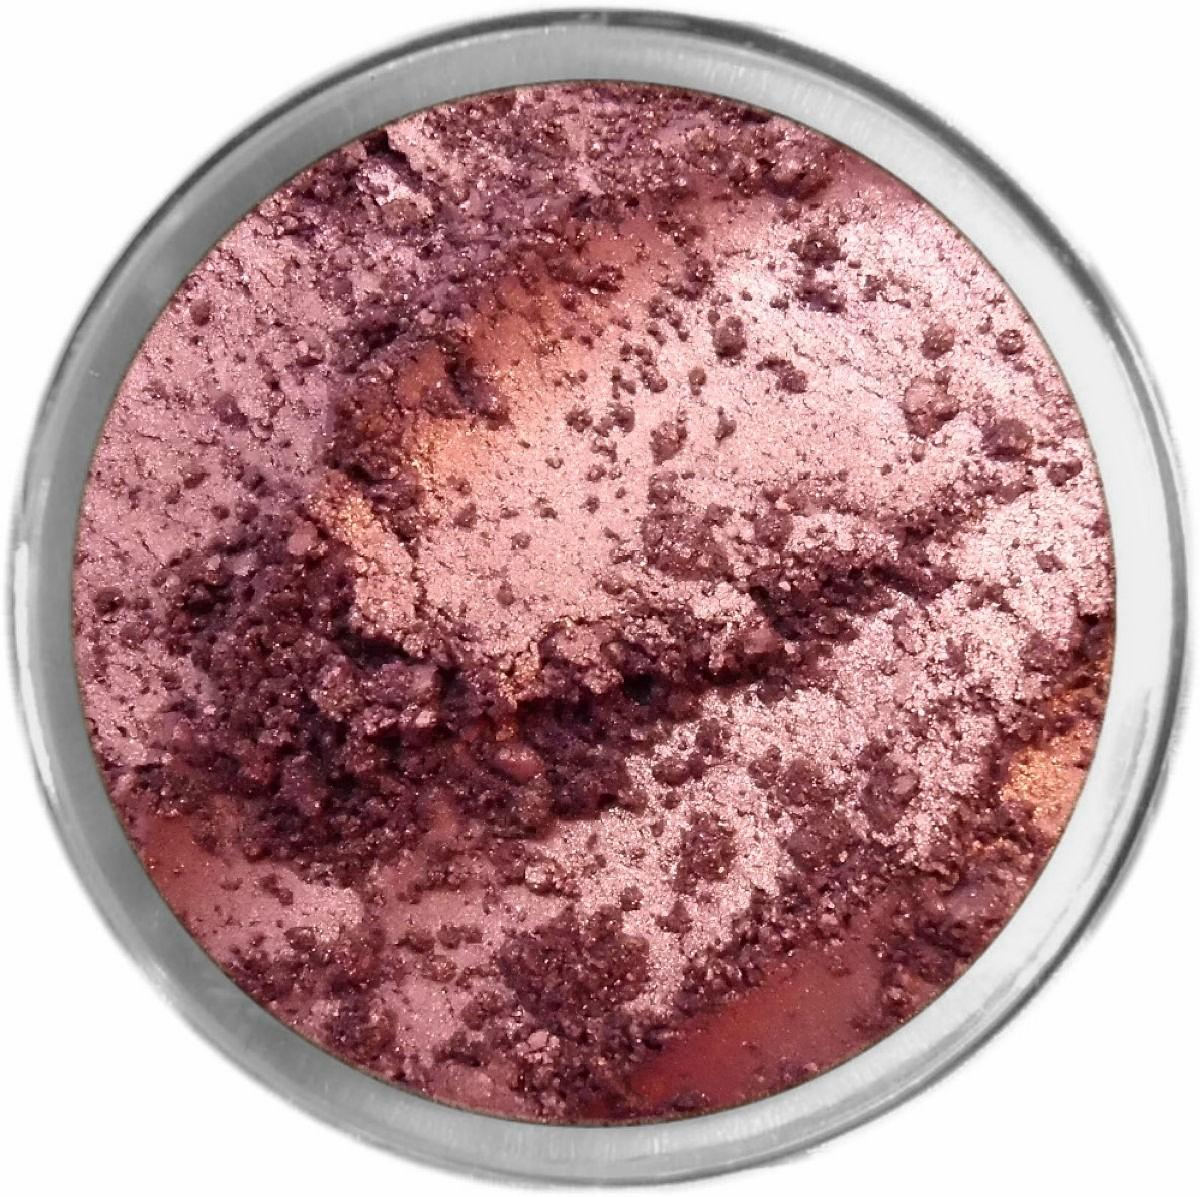 AMBITION loose powder mineral multi-use color makeup bare earth pigment minerals